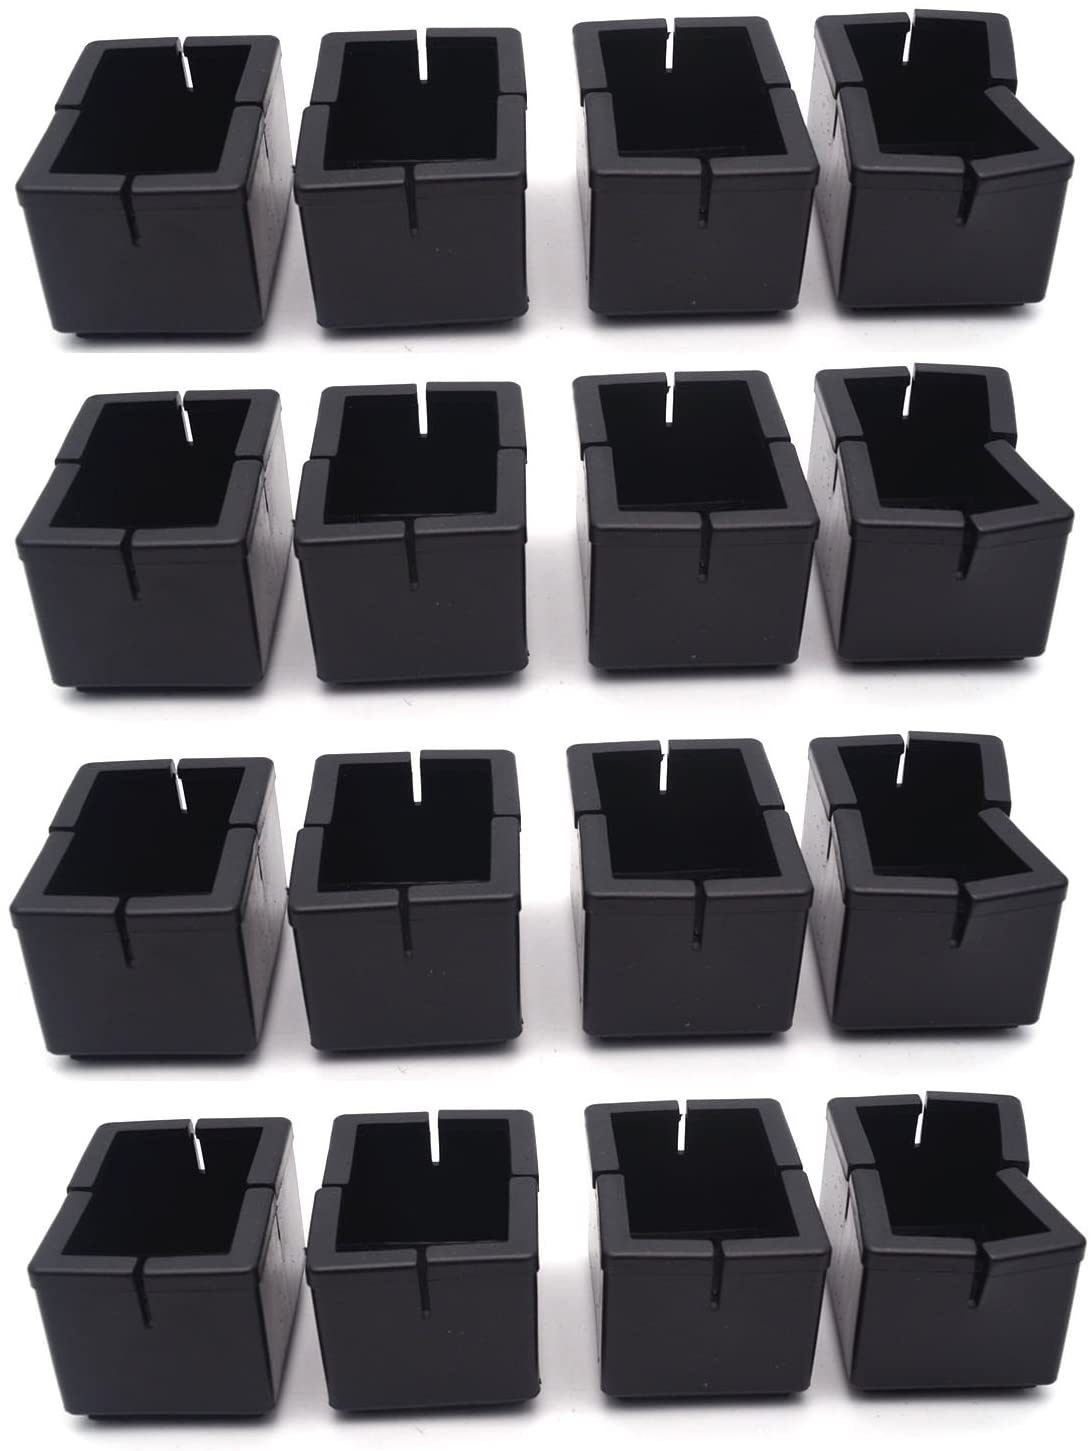 "Antrader 16pcs Silicon Rectangle Furniture Pads Floor Protector Sofa Non-Slip Chair Feet Pad Table Leg Cap with Felt Pads Length 1-7/16"" to 1-5/8"" (3.7cm-4.2cm), Width 5/8"" to 7/8"" (1.6-2.2cm) Black"